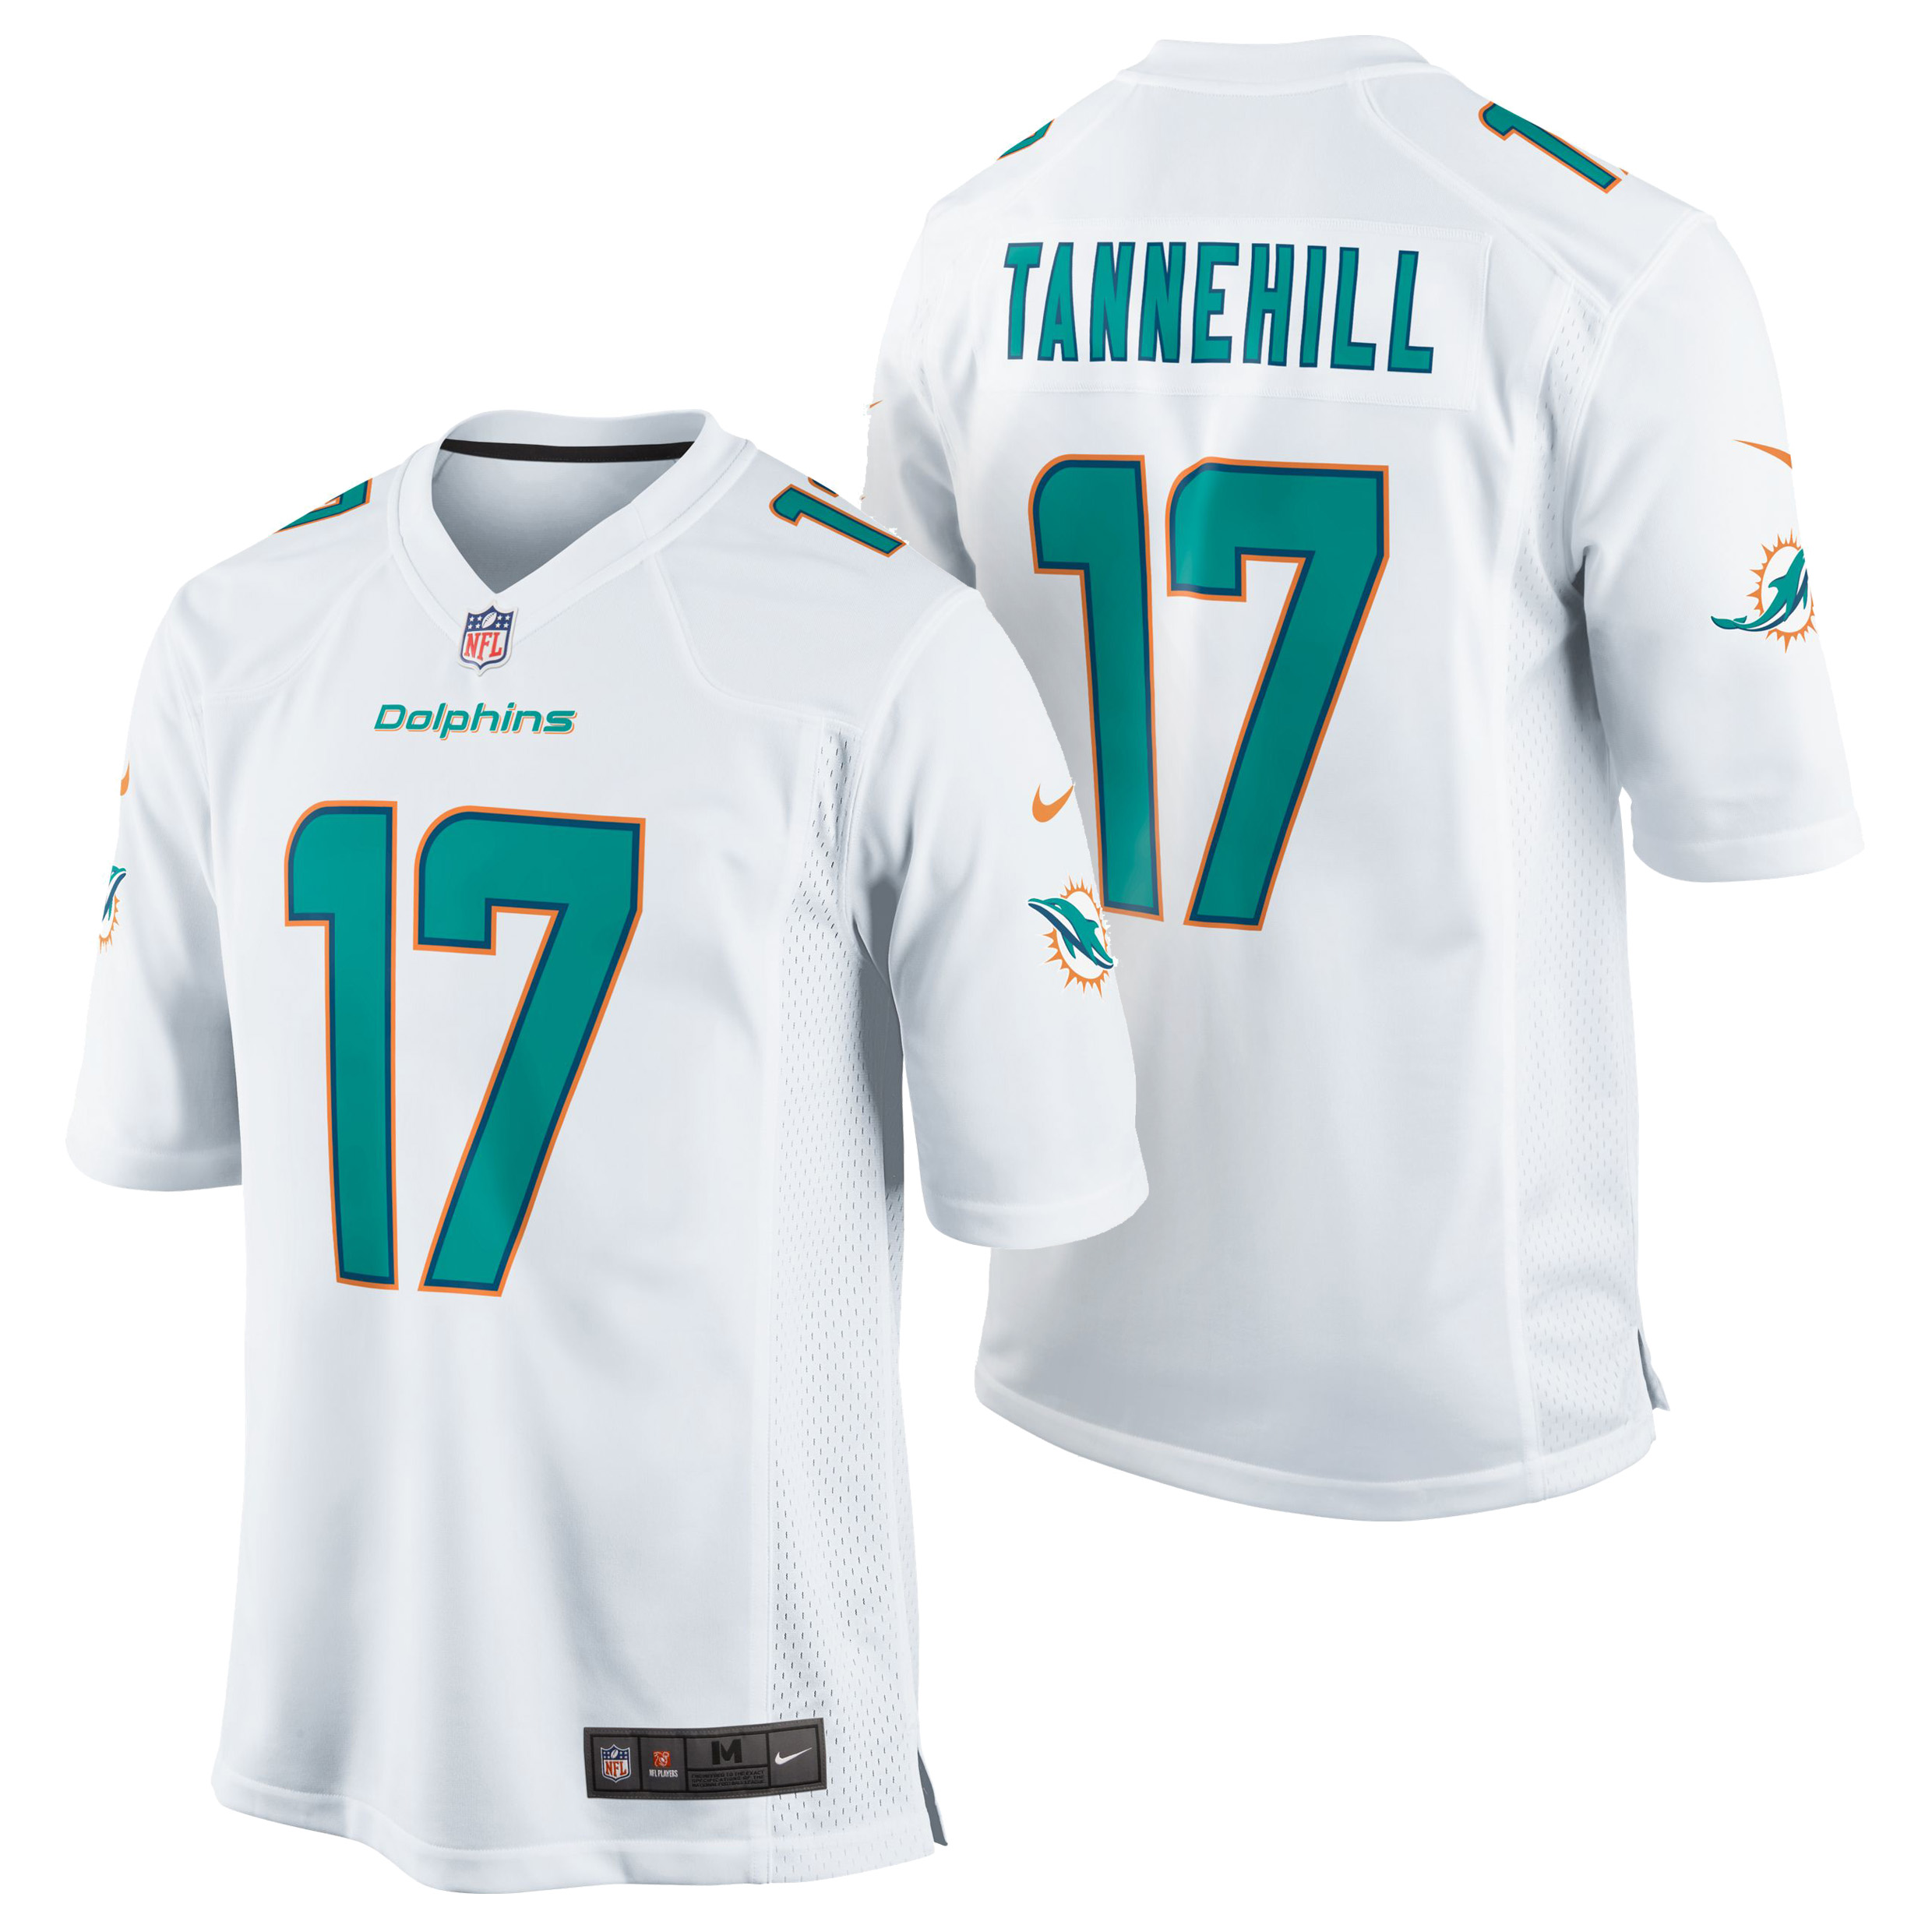 Miami Dolphins Road Game Jersey - Ryan Tannehill